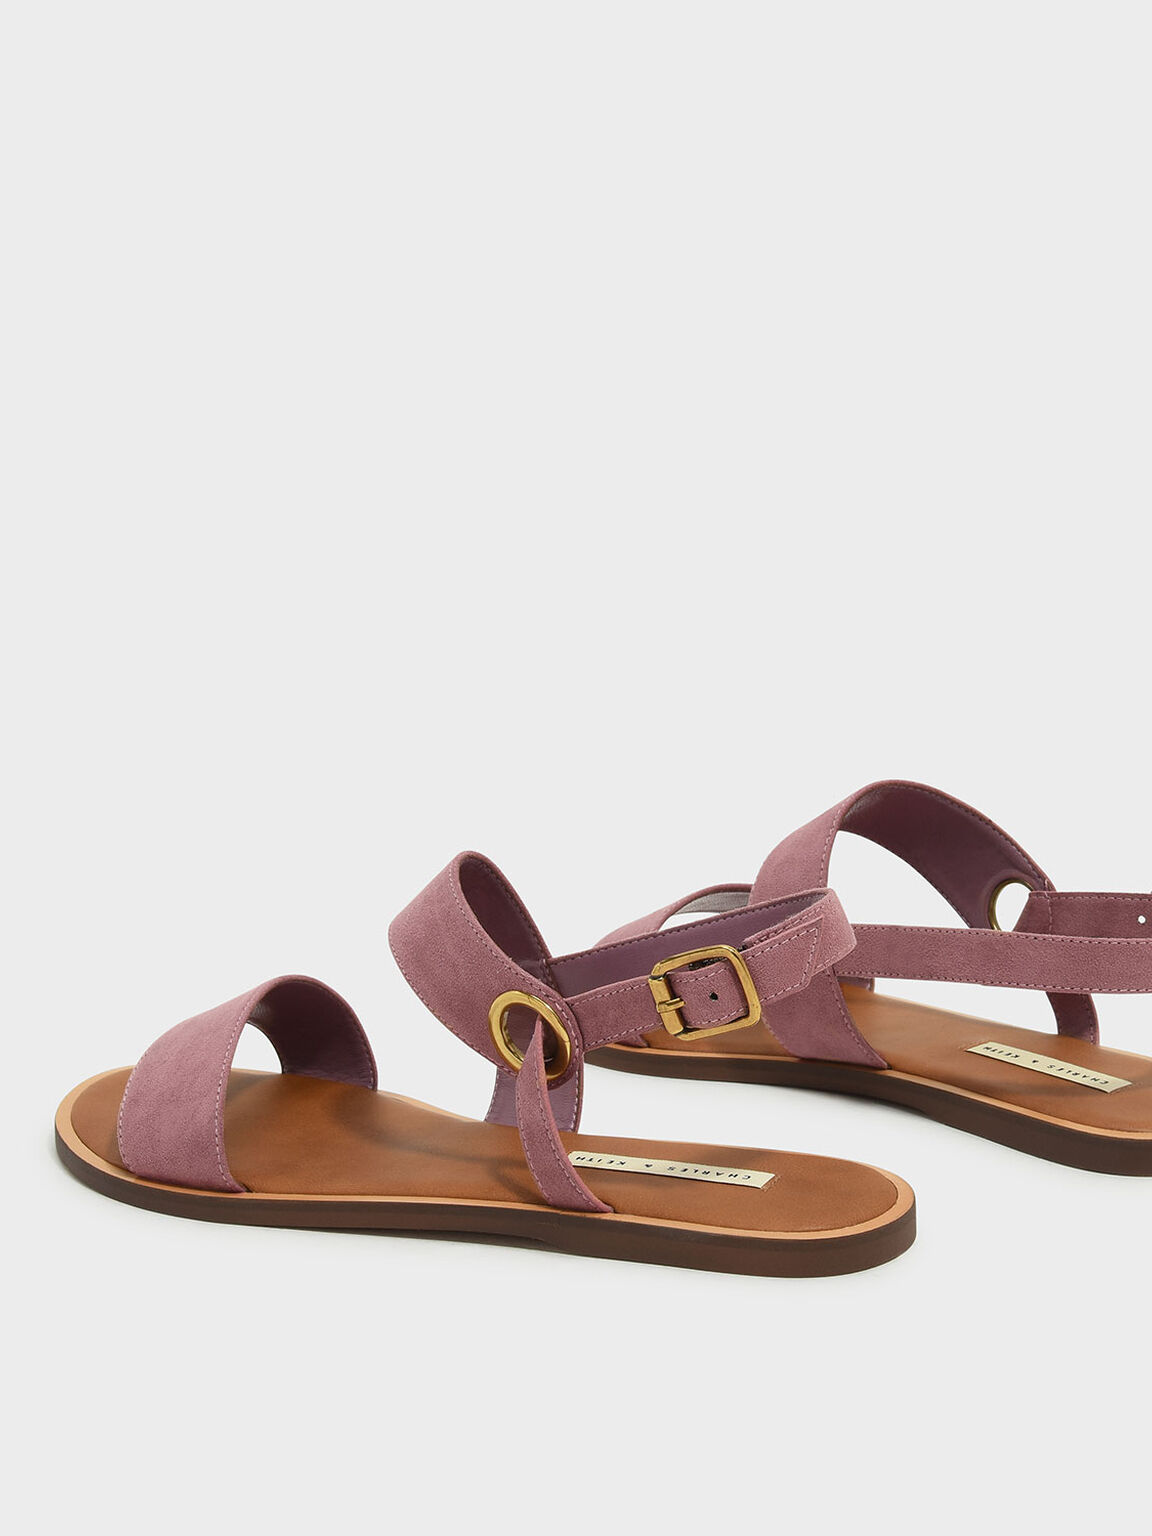 Asymmetrical Sling Back Sandals, Pink, hi-res